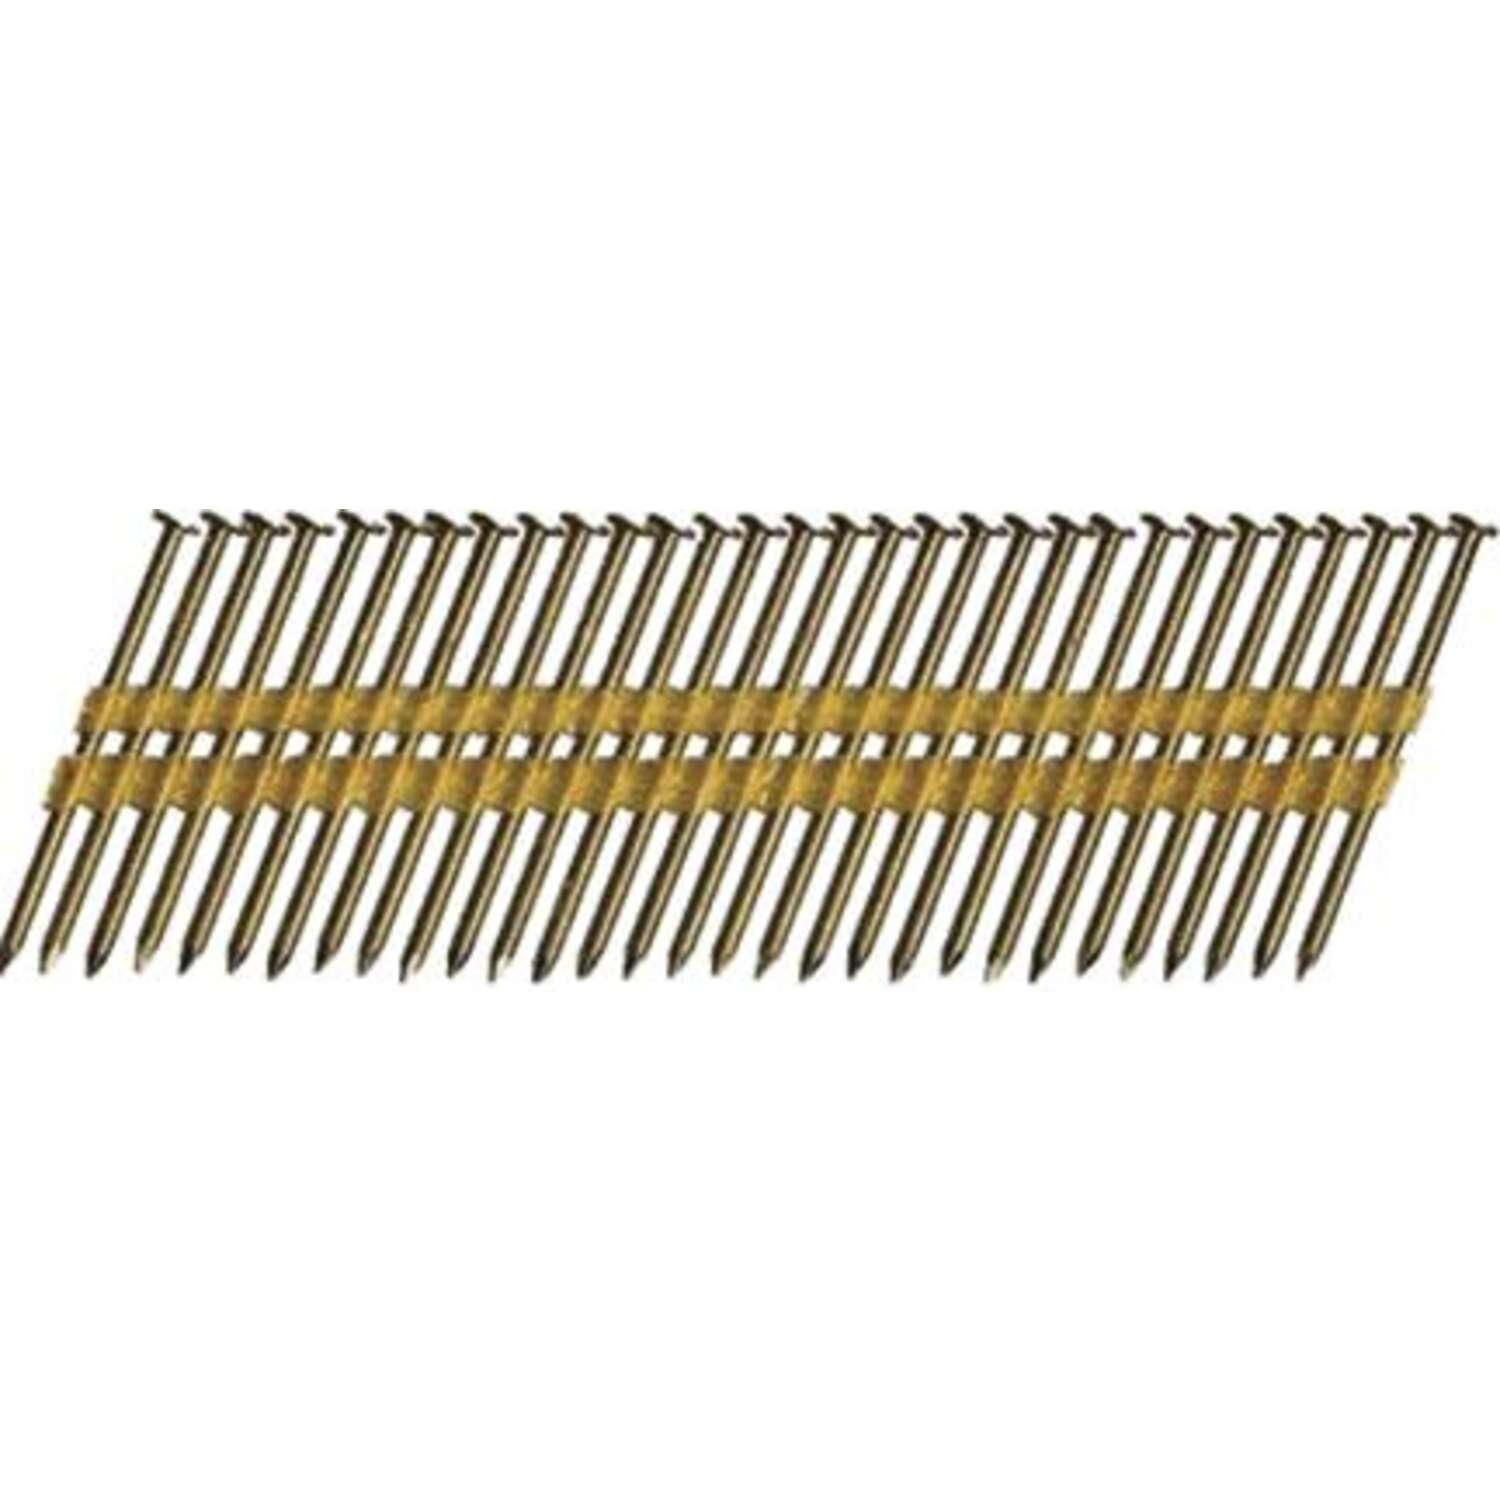 Hitachi  3-1/4 in. Angled Strip  Framing Nails  21 deg. Smooth Shank  4000 pk